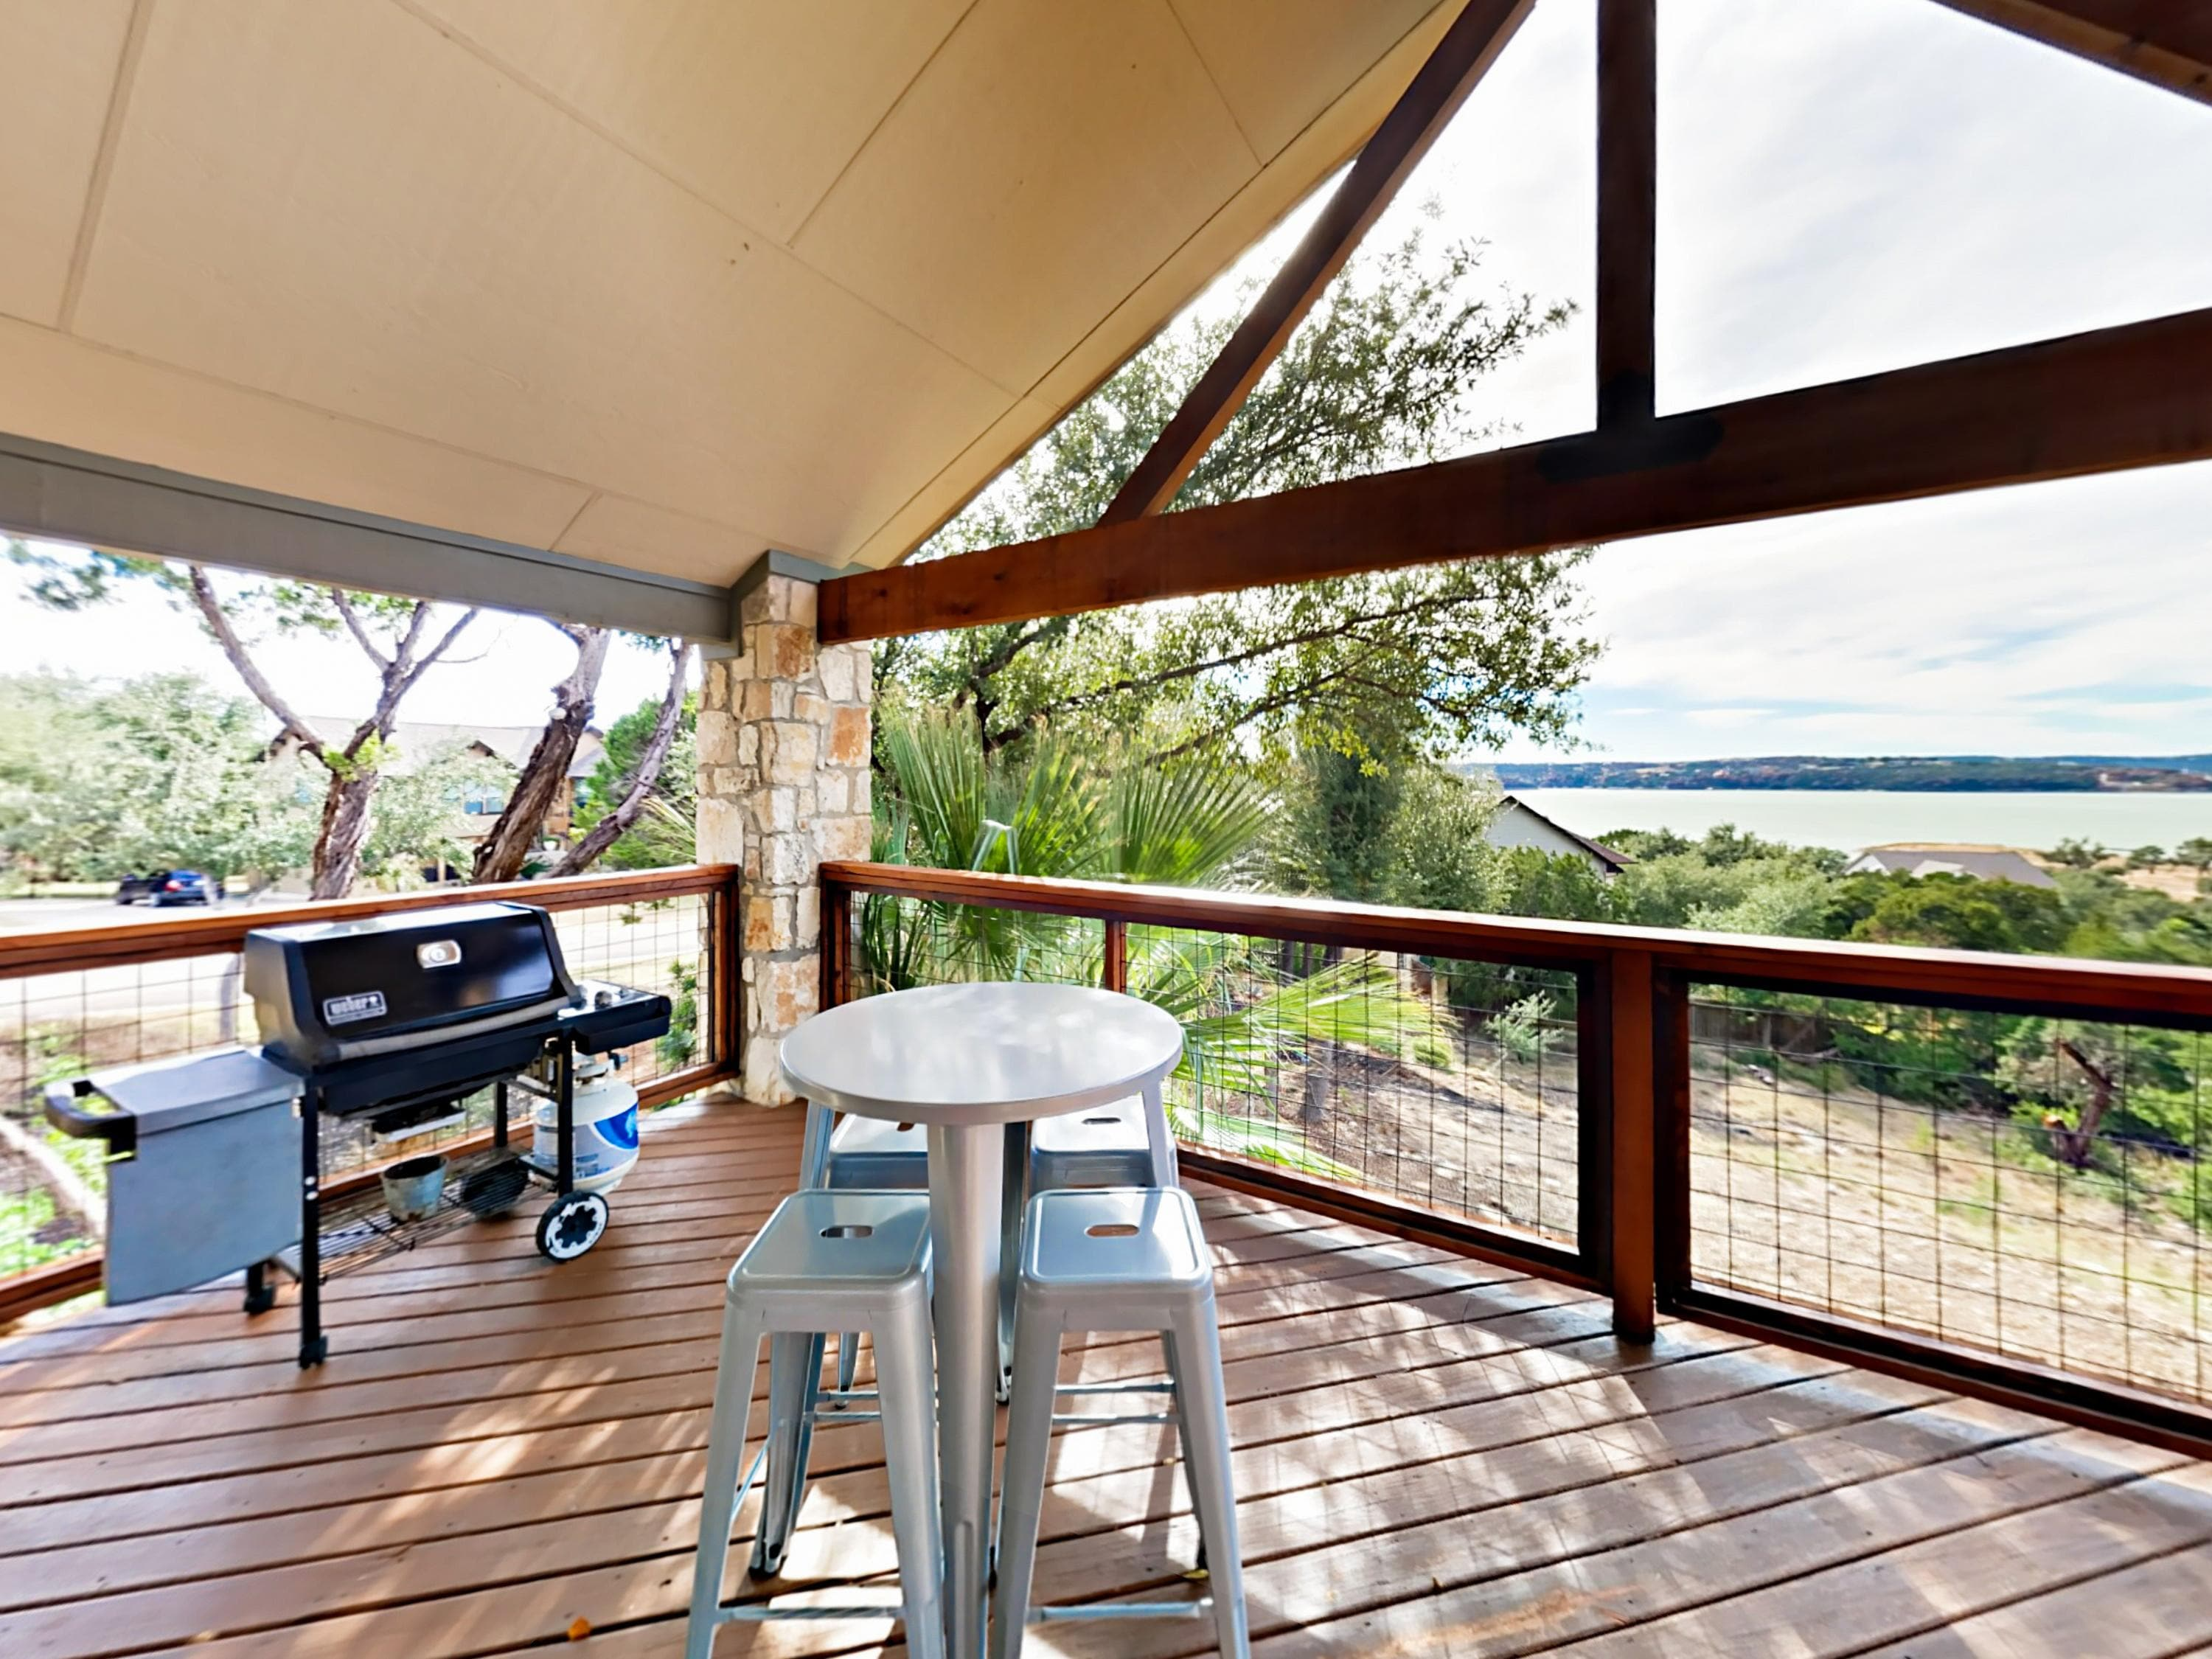 Take your pick of sun or shade on the partially covered deck.